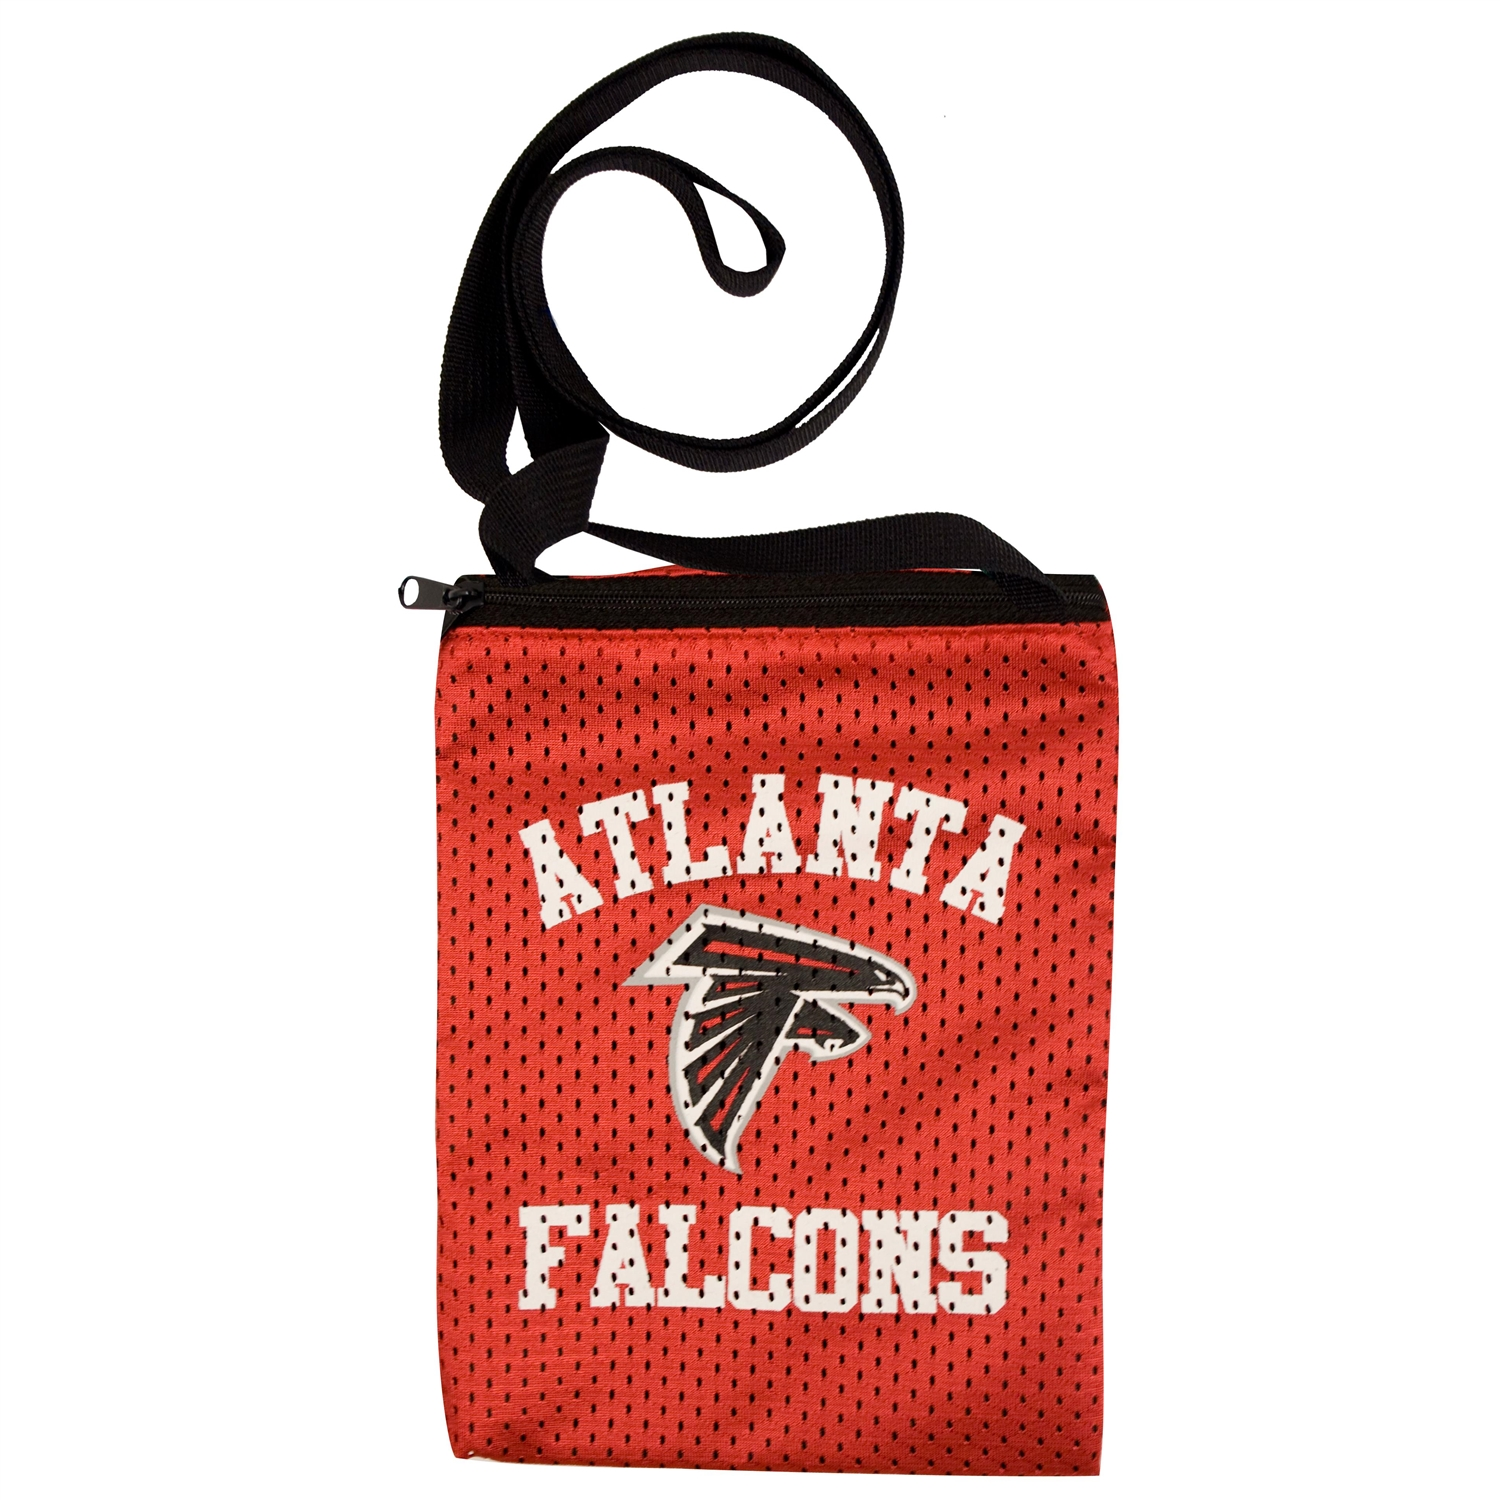 Atlanta Falcons Game Day Pouch - 300103-falc - Handbags; Wallets Cases Nfl 300103-FALC